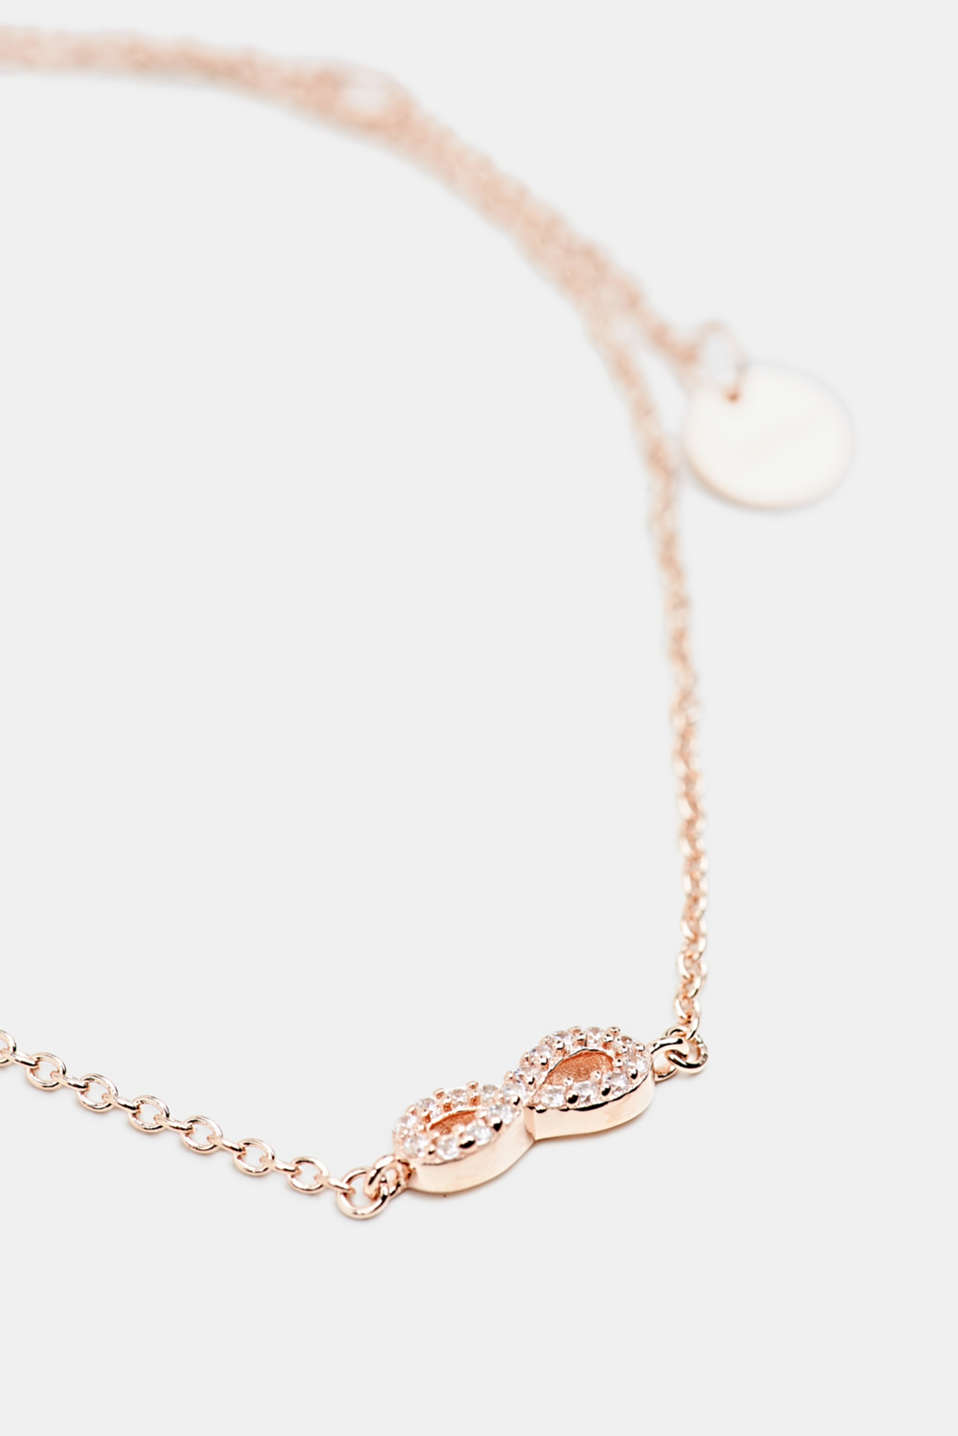 Bracelet with zirconia charm, sterling silver, LCROSEGOLD, detail image number 1